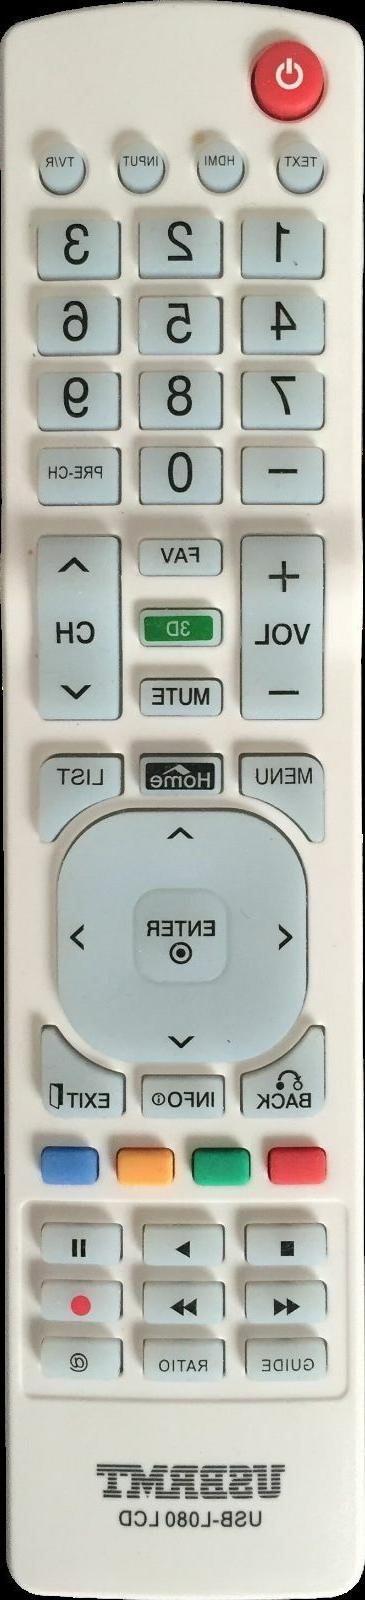 New USB Remote for Model 01 PROSCAN TV Programmed